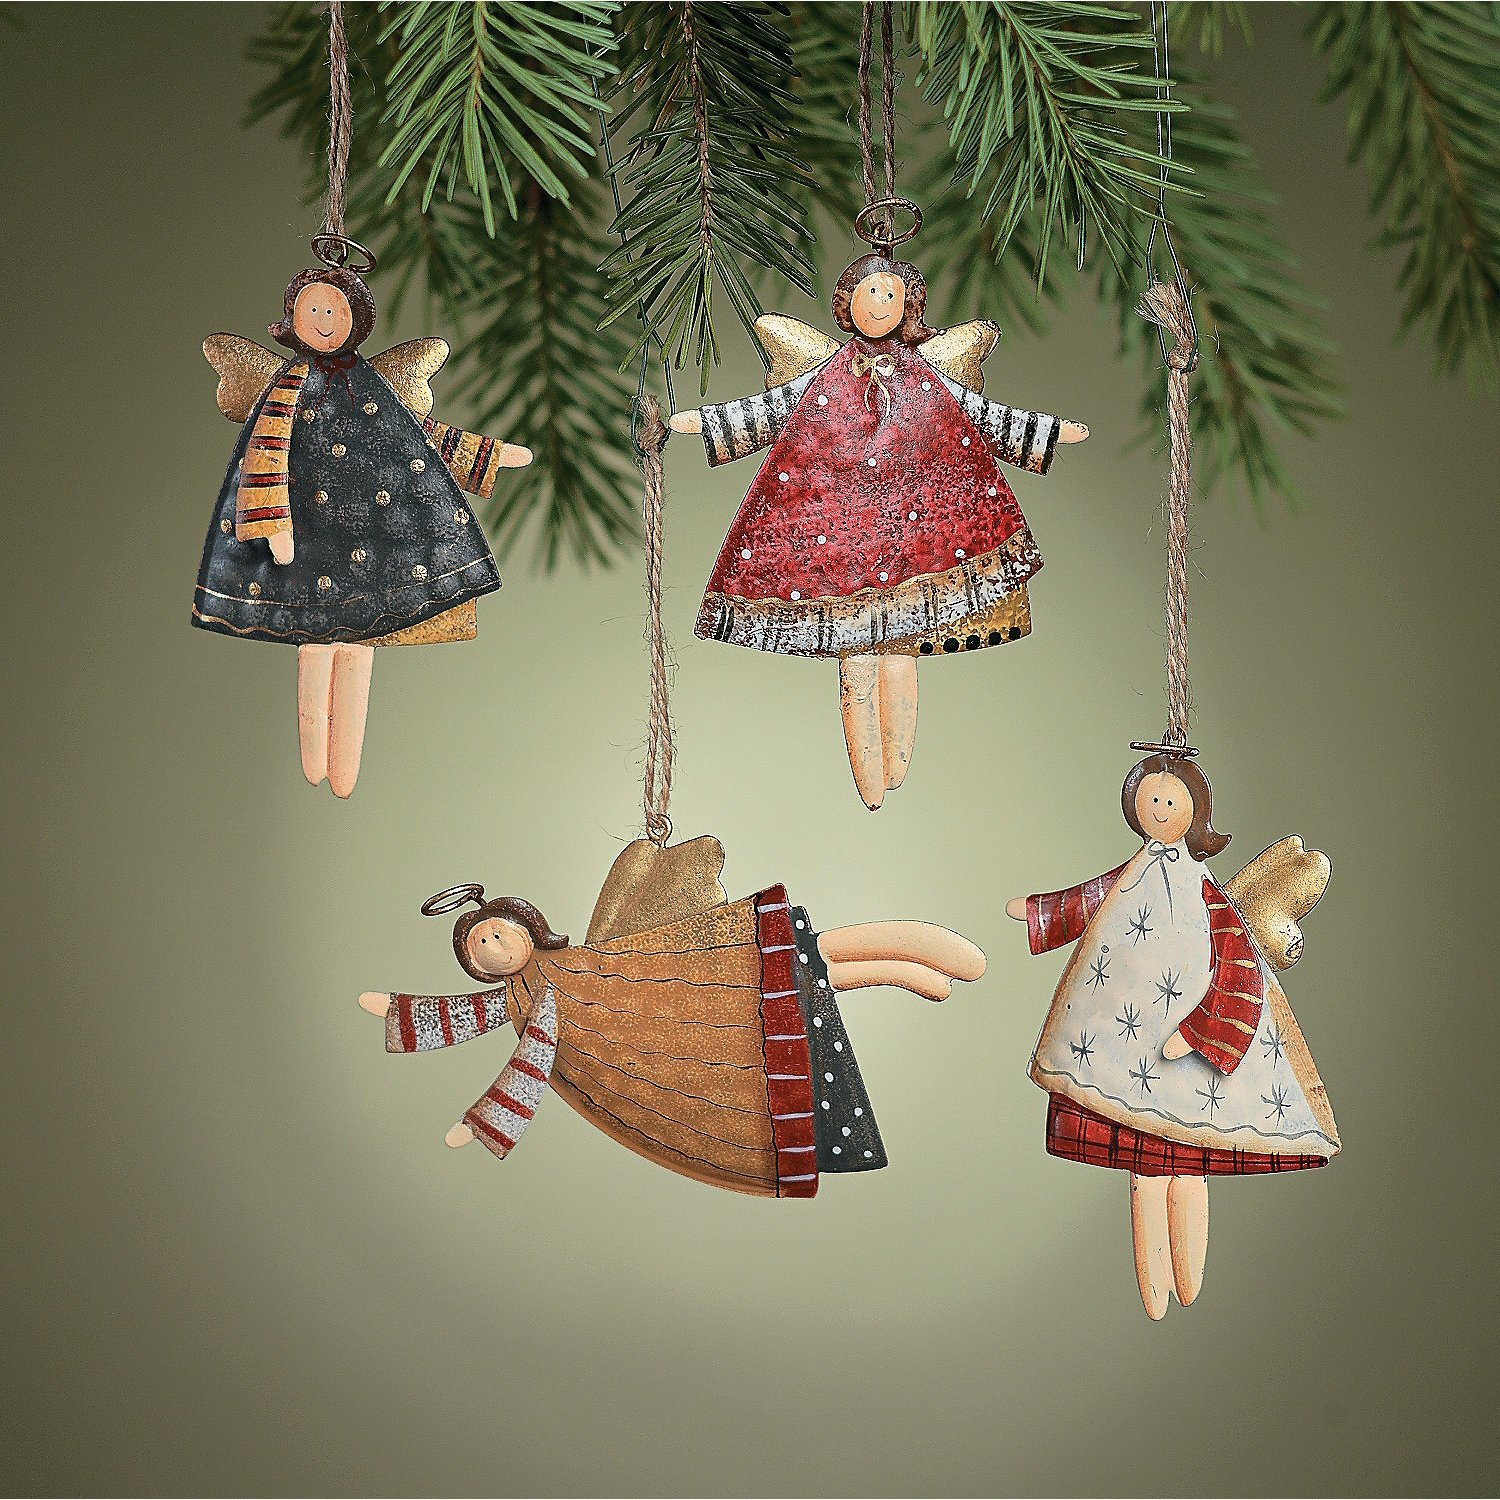 manufactured Christmas ornaments